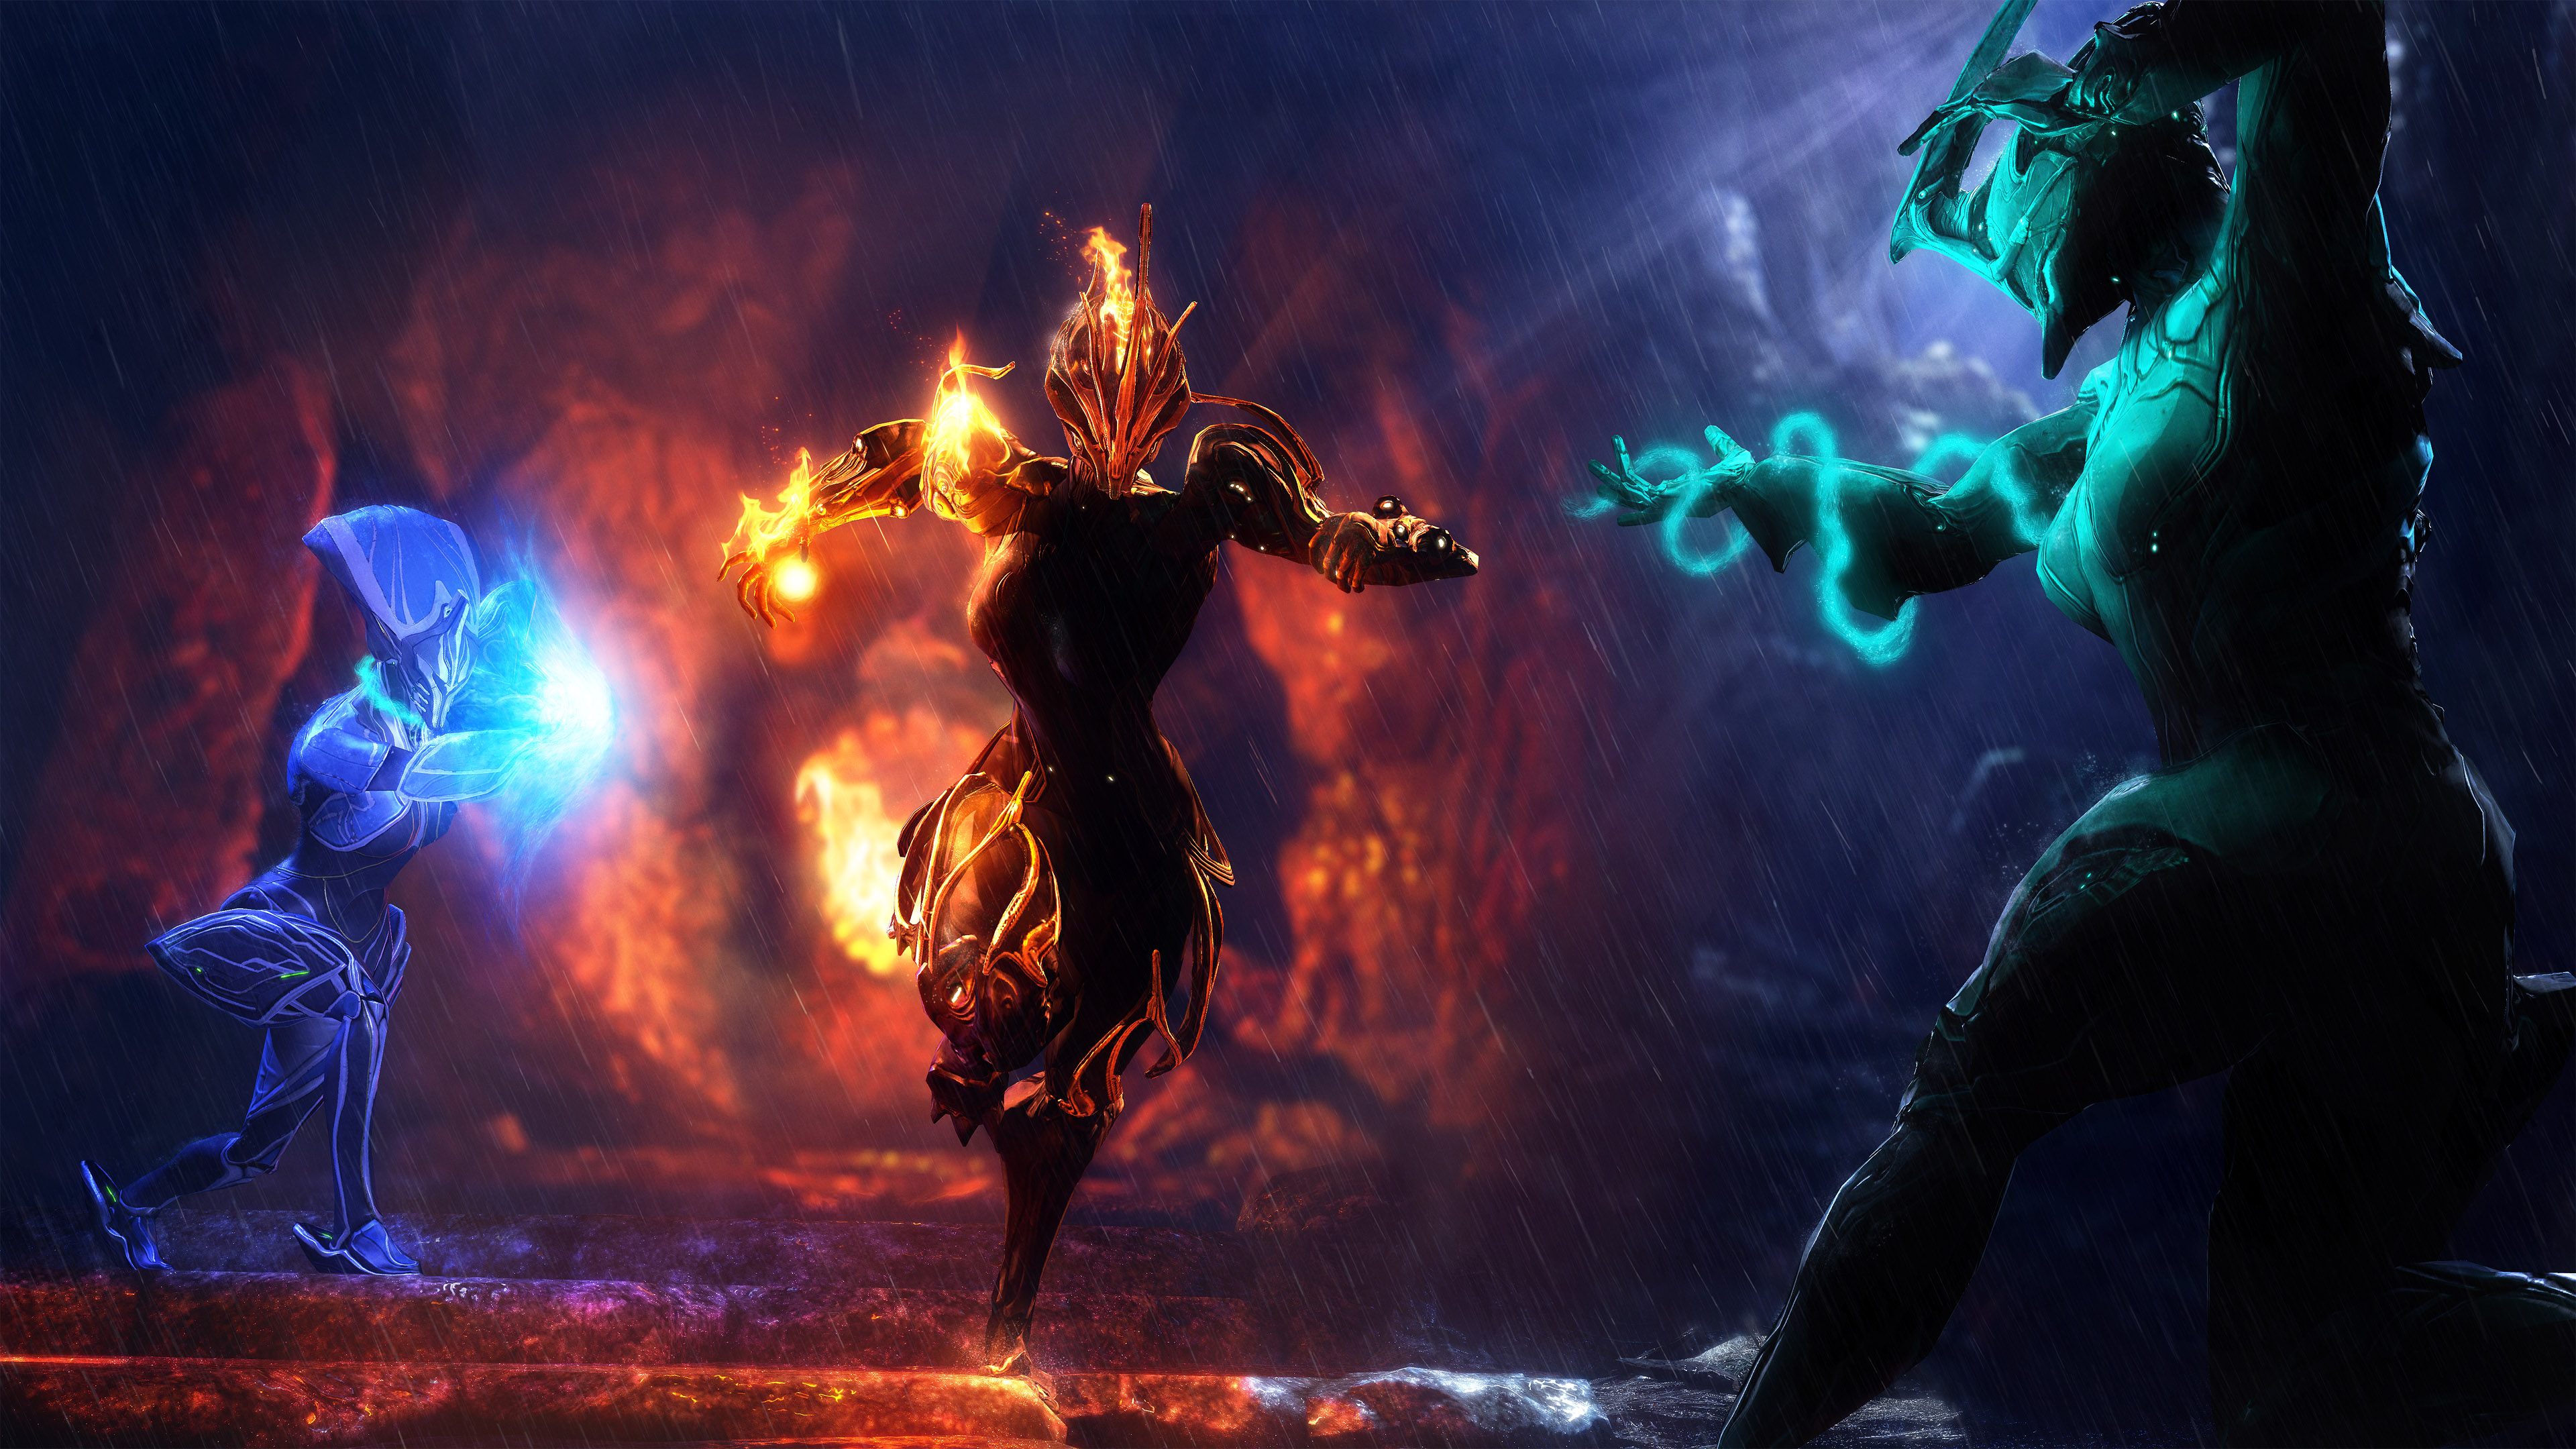 184 Warframe Hd Wallpapers Background Images Wallpaper Abyss